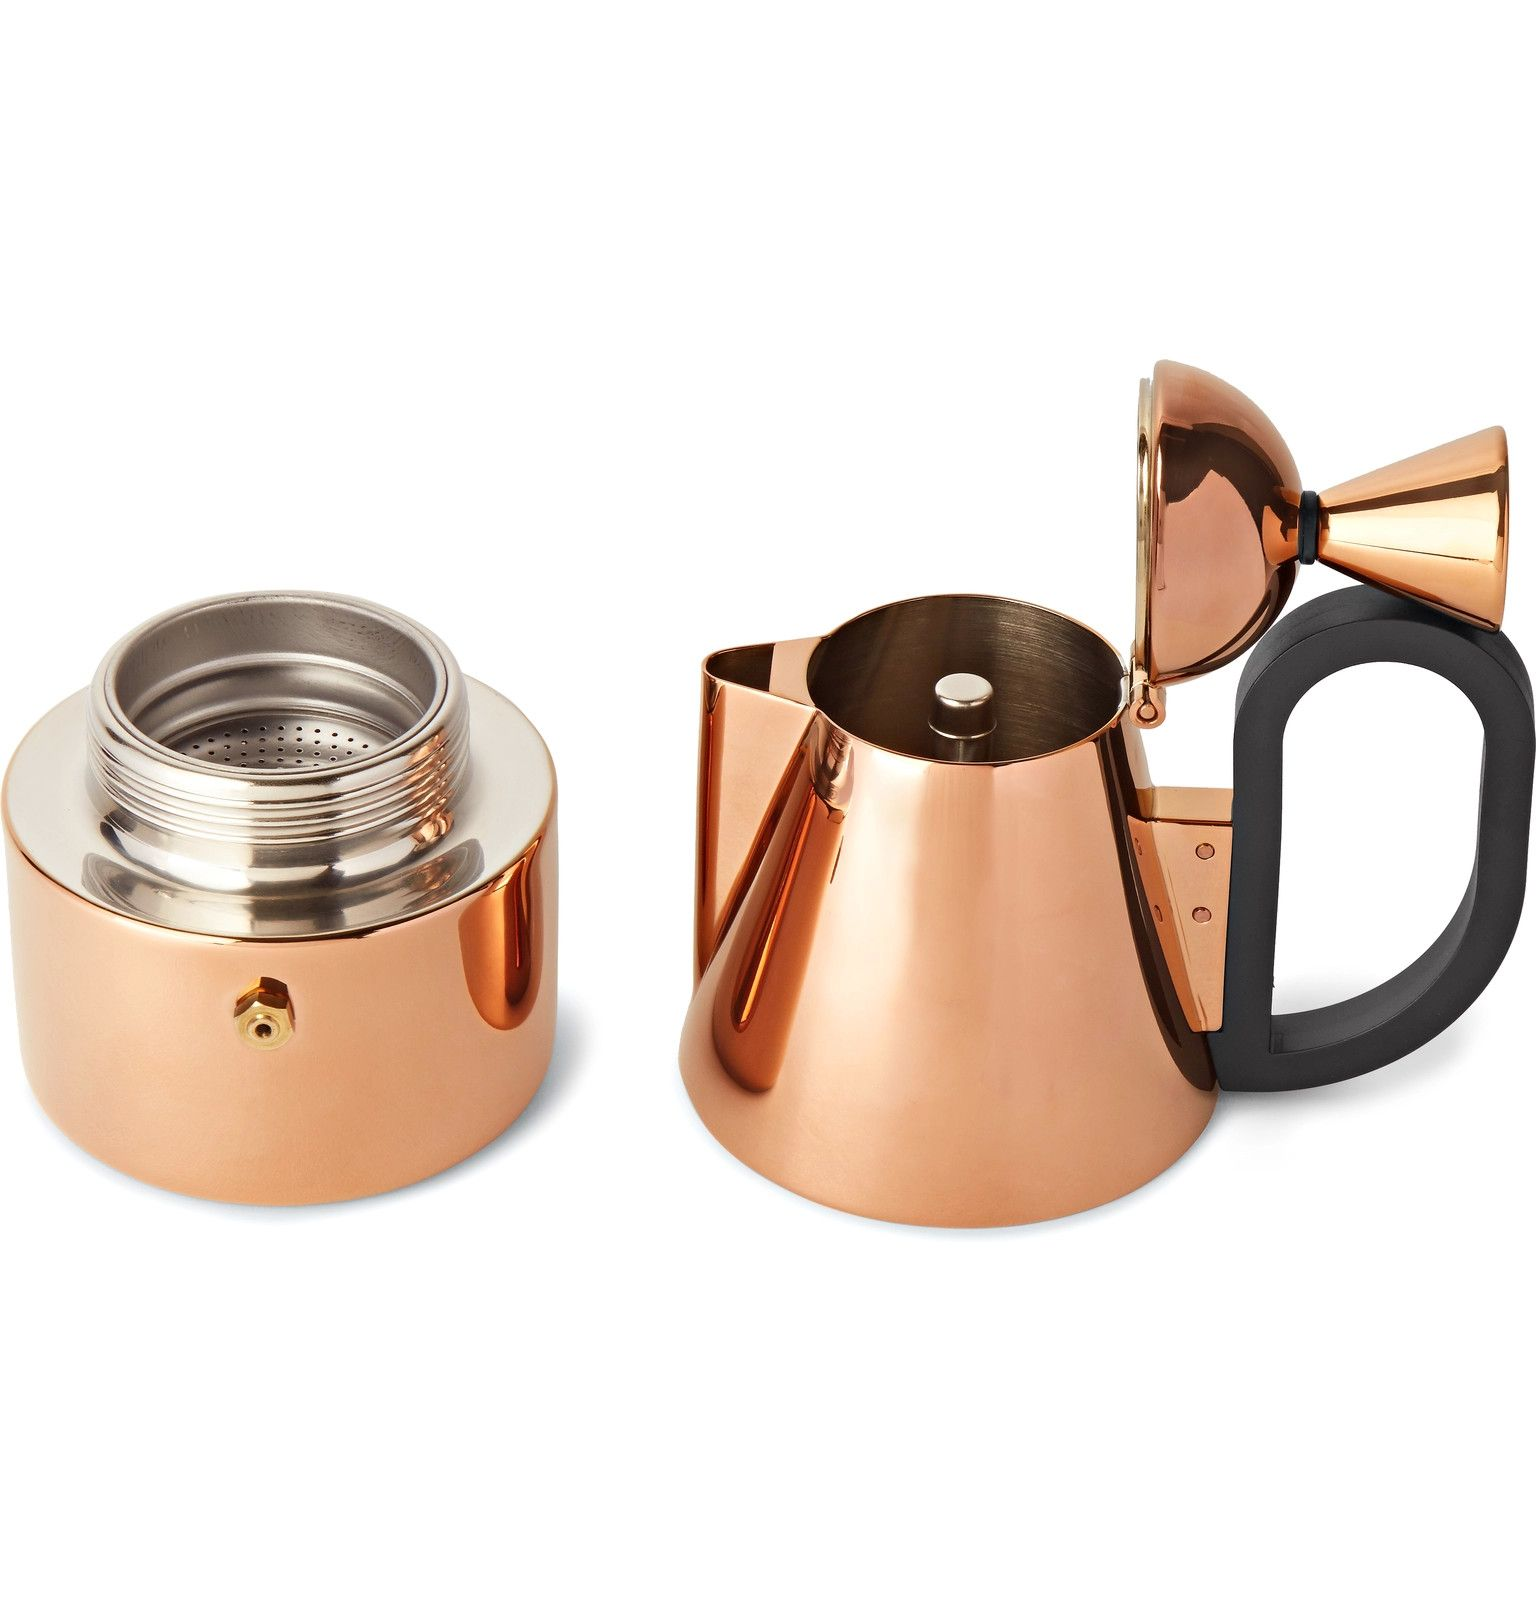 Crafted From Smooth Stainless Steel A Href Http Www Mrporter Com Mens Designers Tom Dixon Tom Dixon A S Stovetop C Tom Dixon Copper Plated Coffee Maker